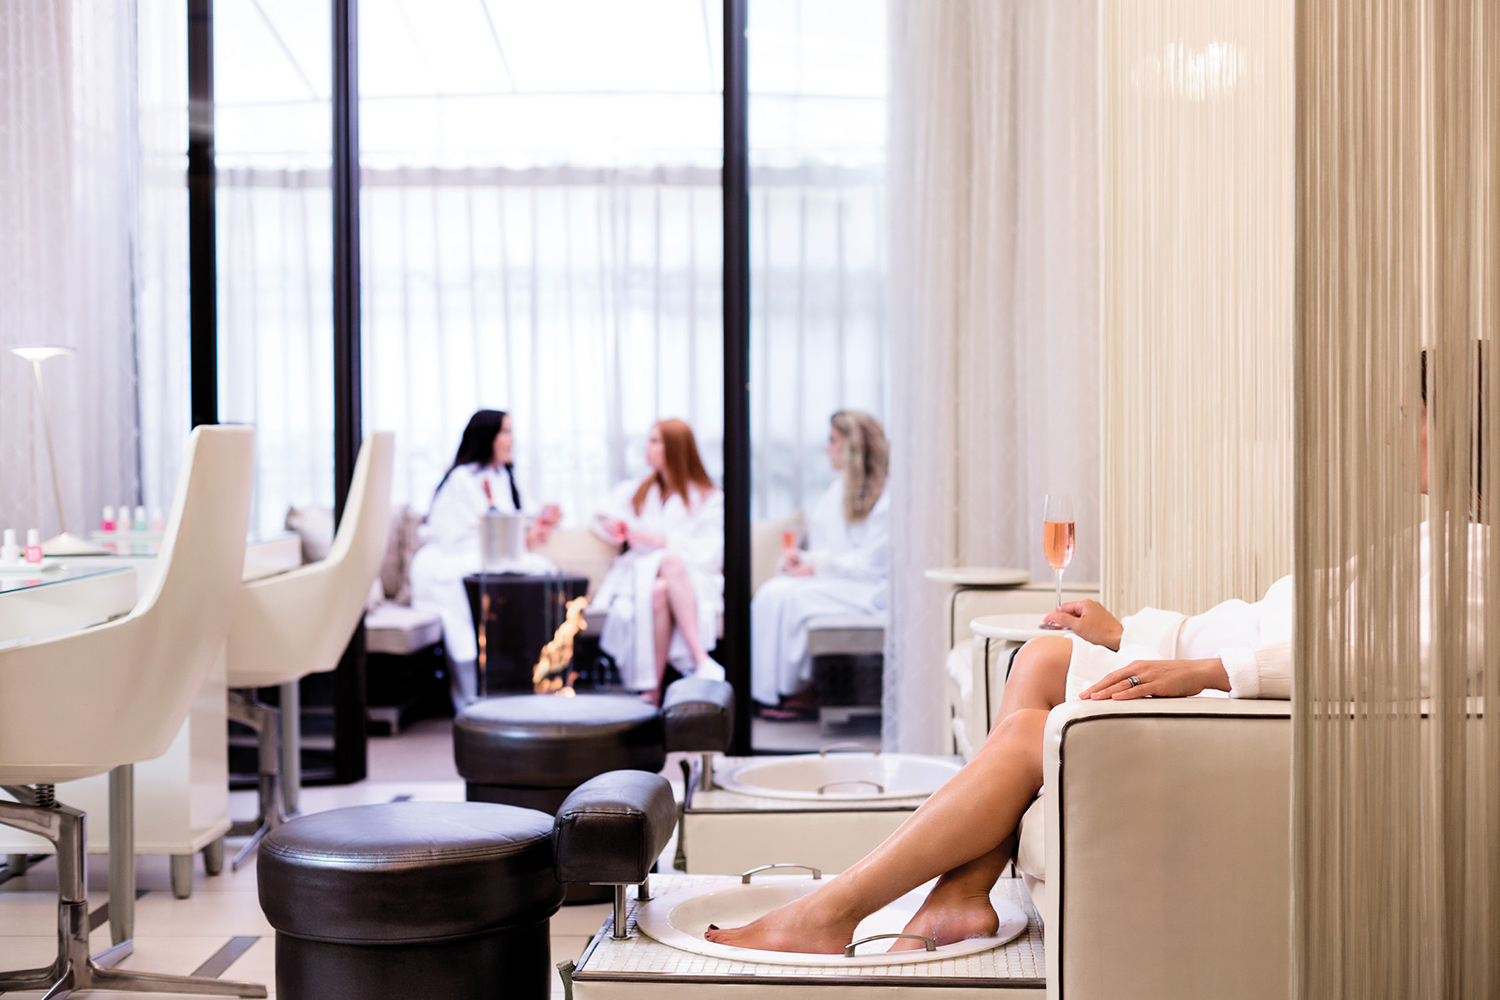 A guest relaxes while receiving a pedicure.